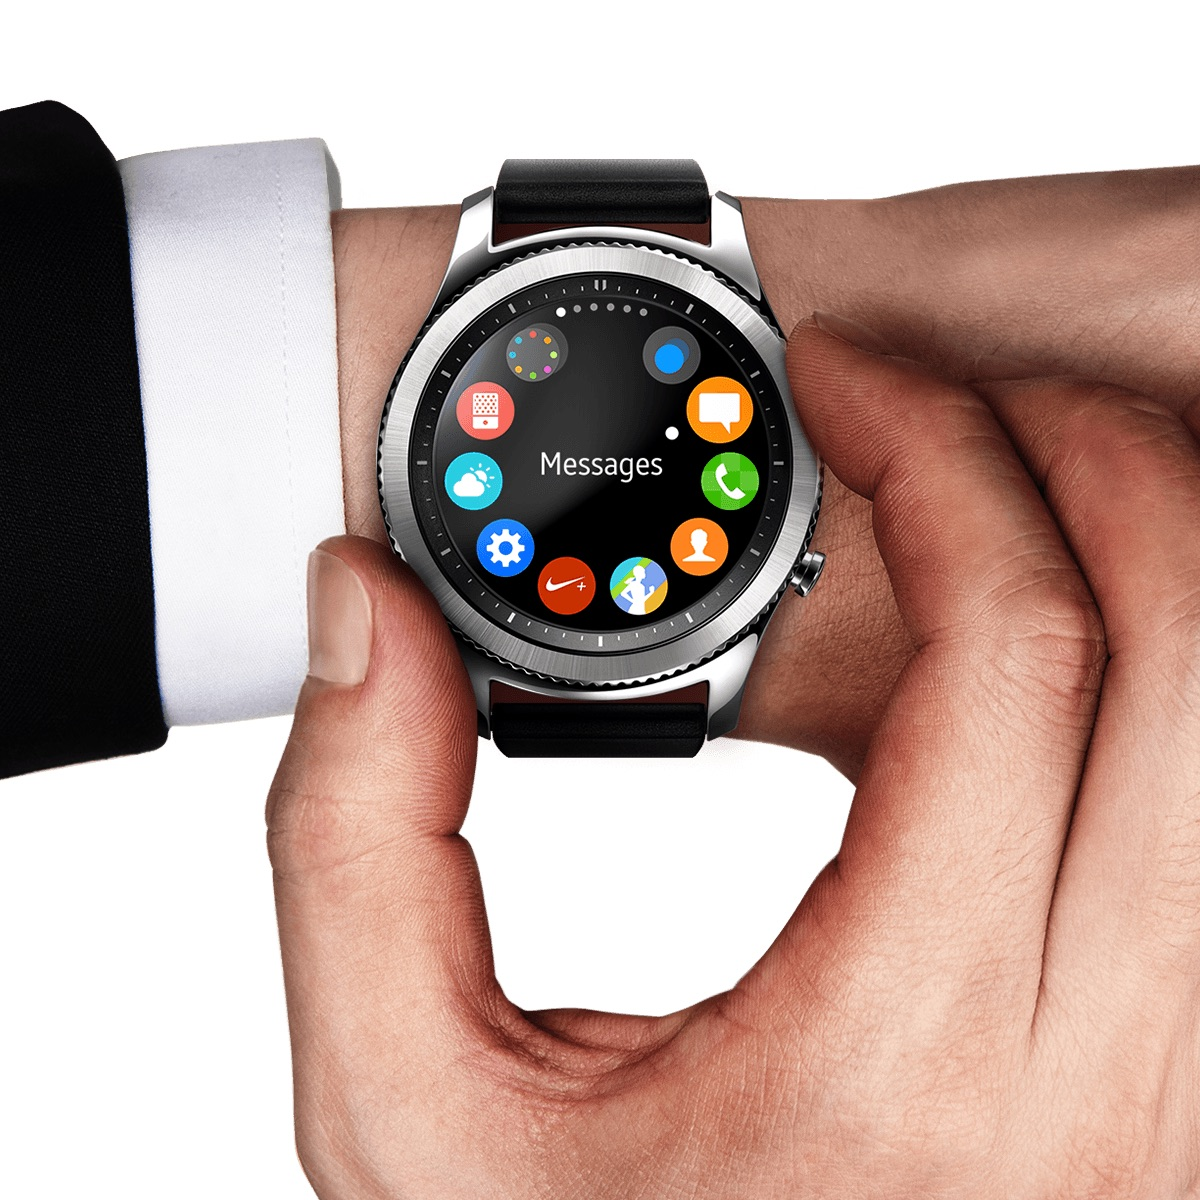 Samsung Gear S3 Smartwatches